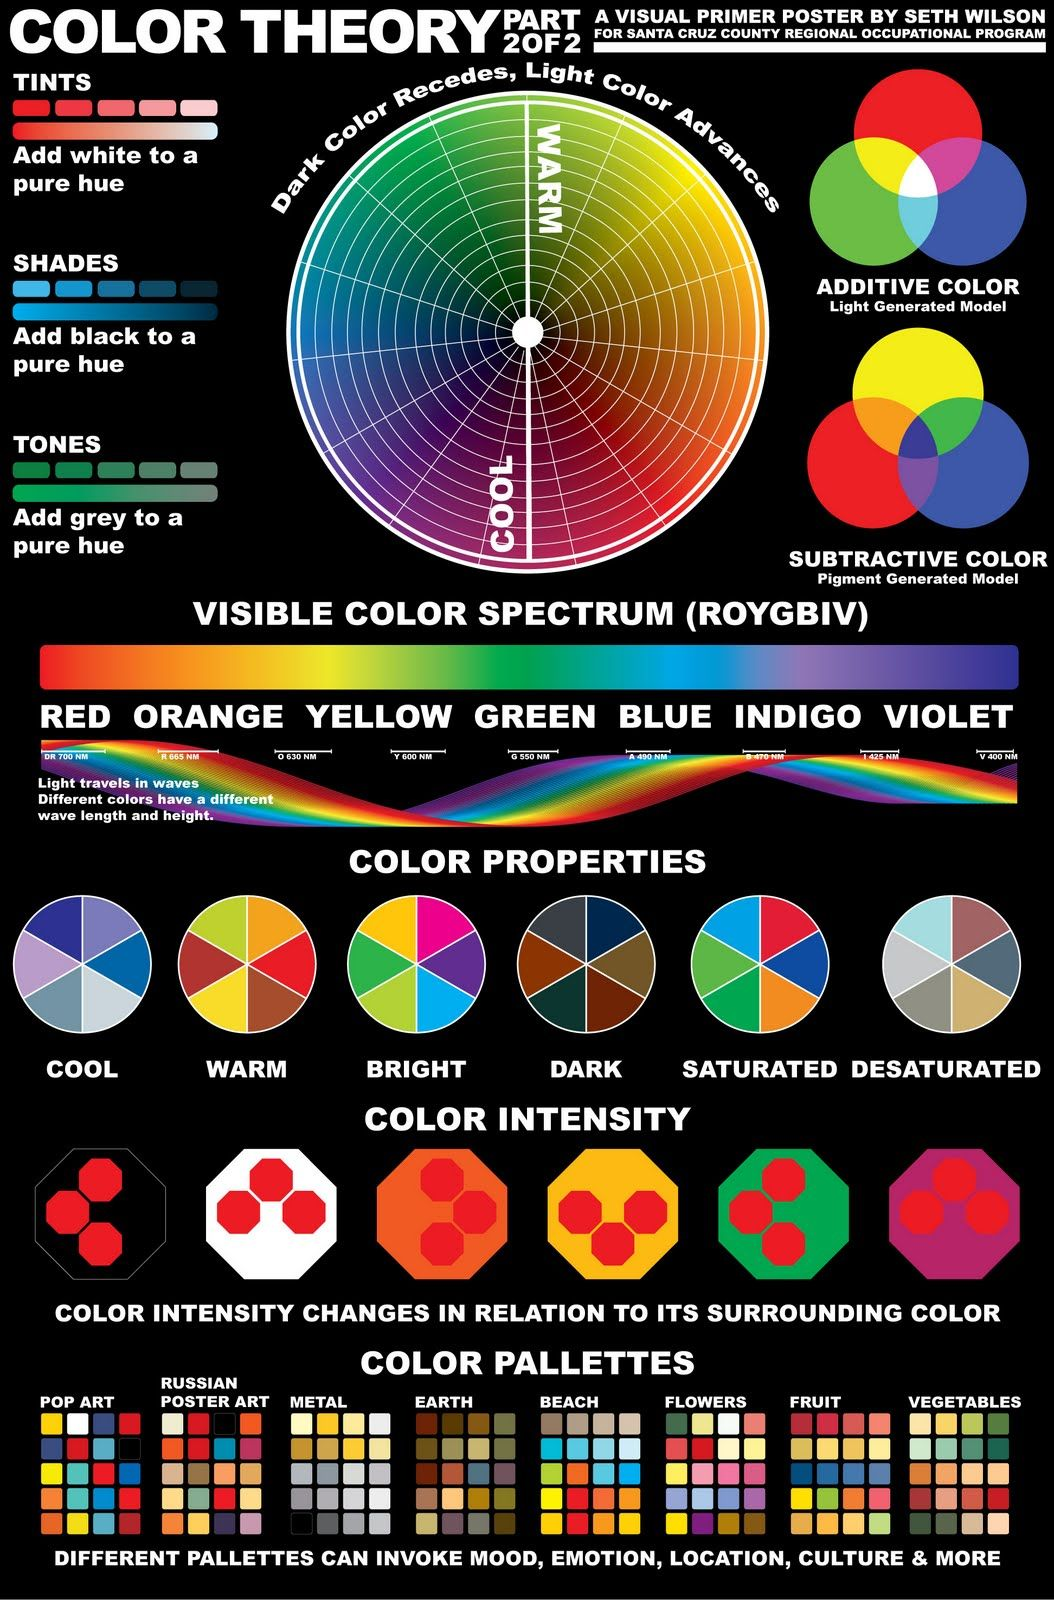 Here is the second part to my color theory poster. I need